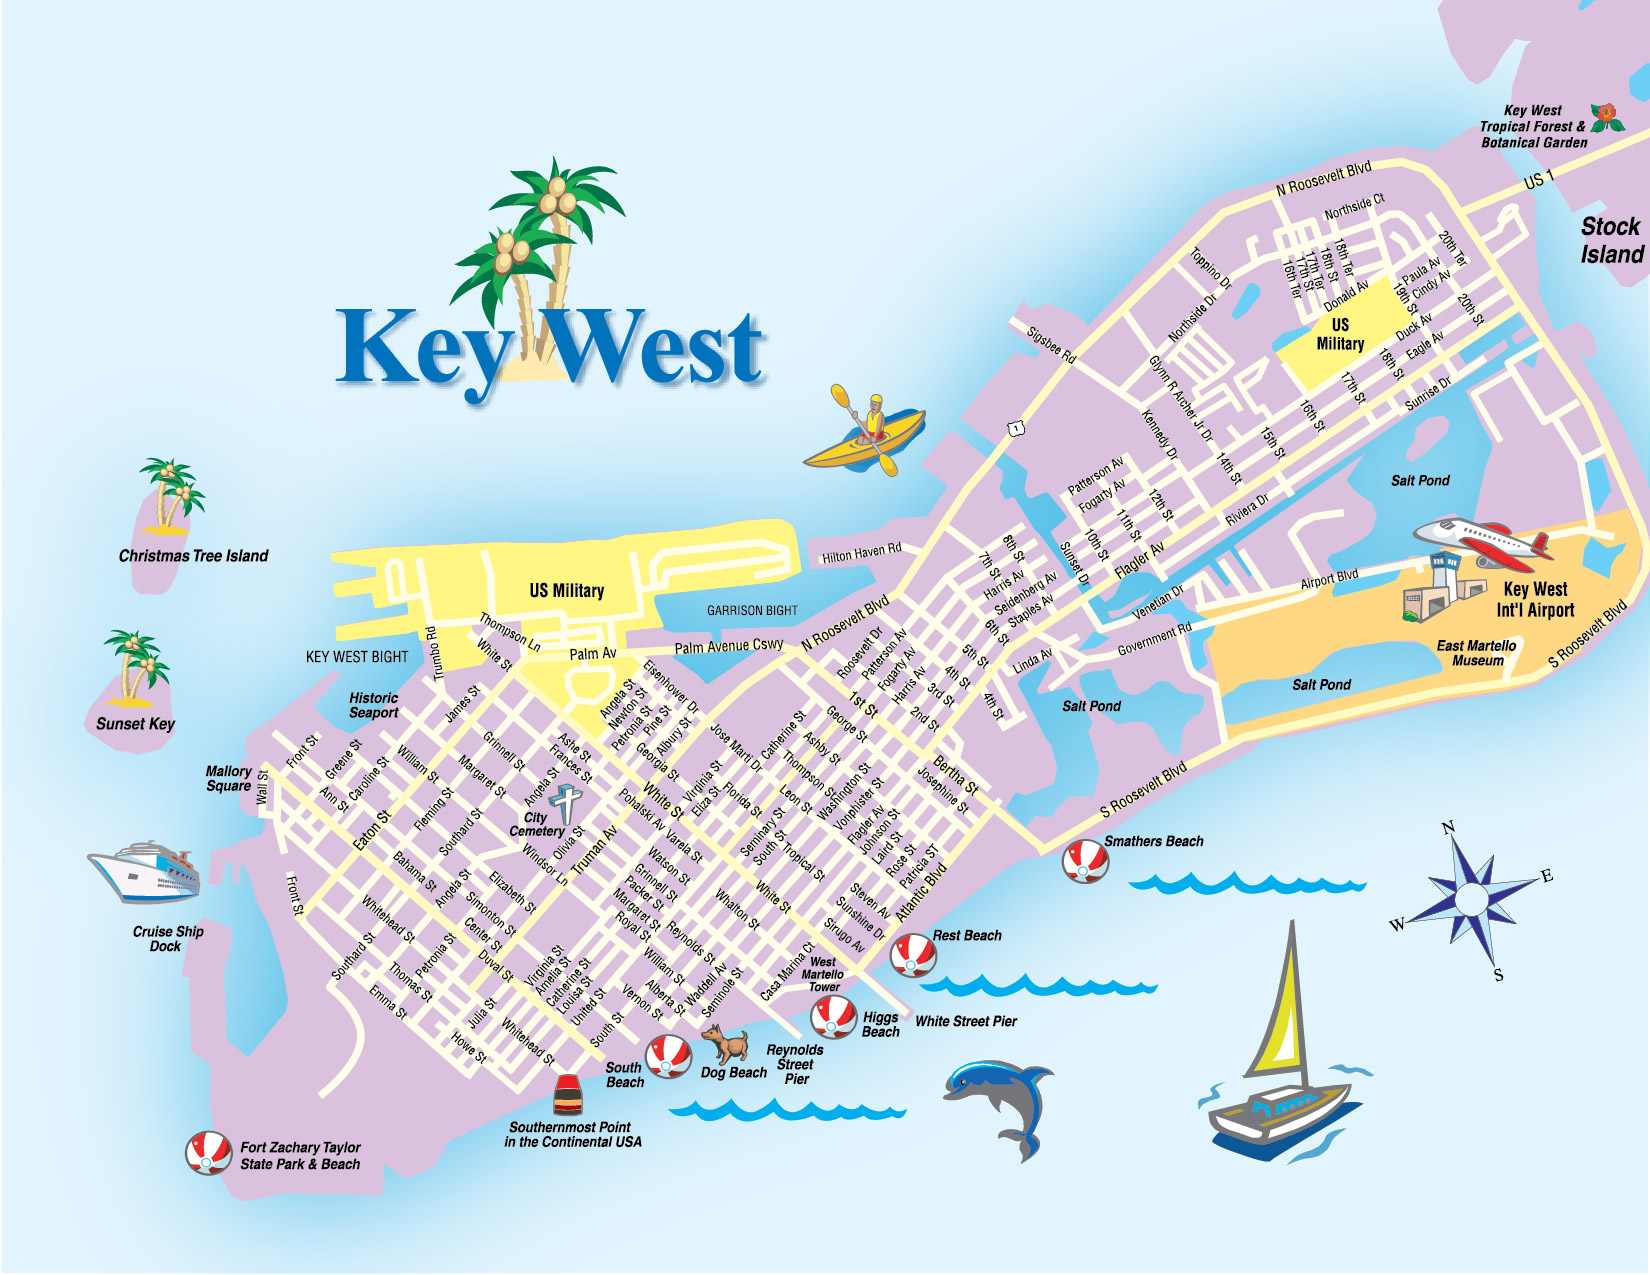 Keys & Key West Map PDFs - DESTINATION Keys Of Florida Airports Map on map of montana airports, map of san francisco airports, map of boston airports, map of phoenix airports, map of dallas airports, map of washington airports, map of las vegas airports, map of new york city airports, map of hilton head airports, map of cape cod airports, map of tampa airports, map of mexico airports, map of dominican republic airports, map of miami airports,